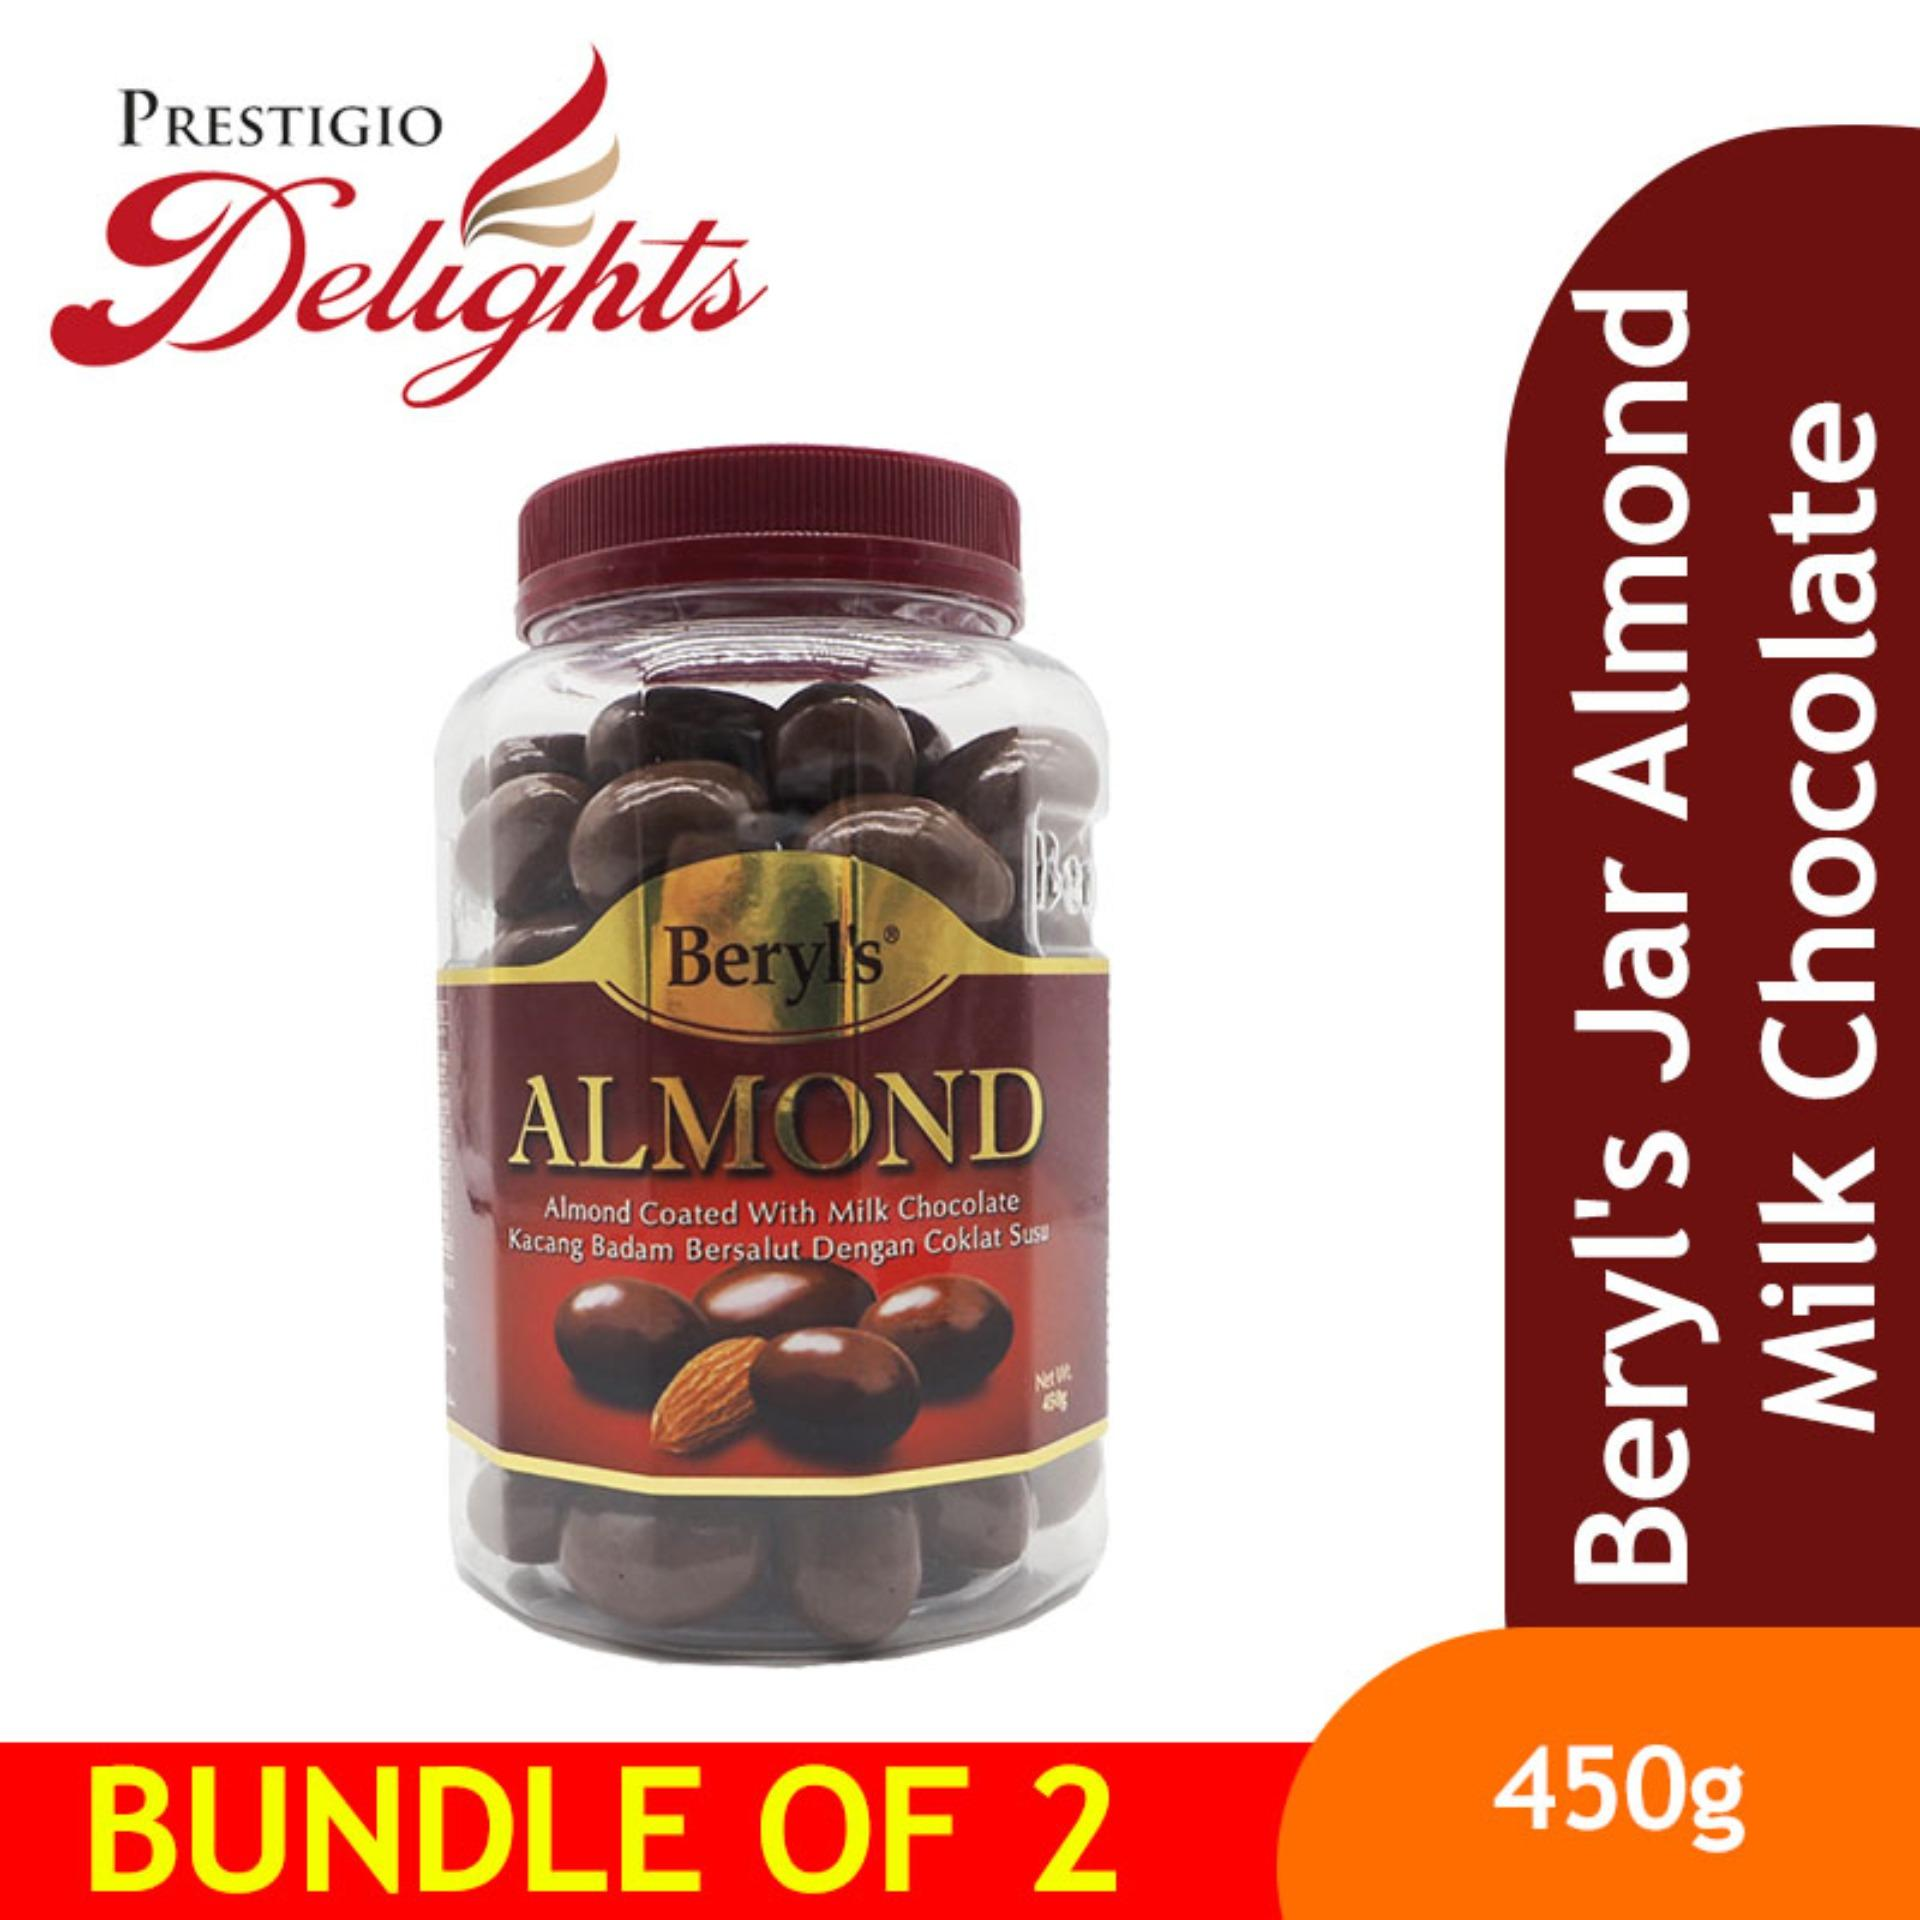 Beryls Jar Almond Milk Chocolate 450g Bundle Of 2 By Prestigio Delights.